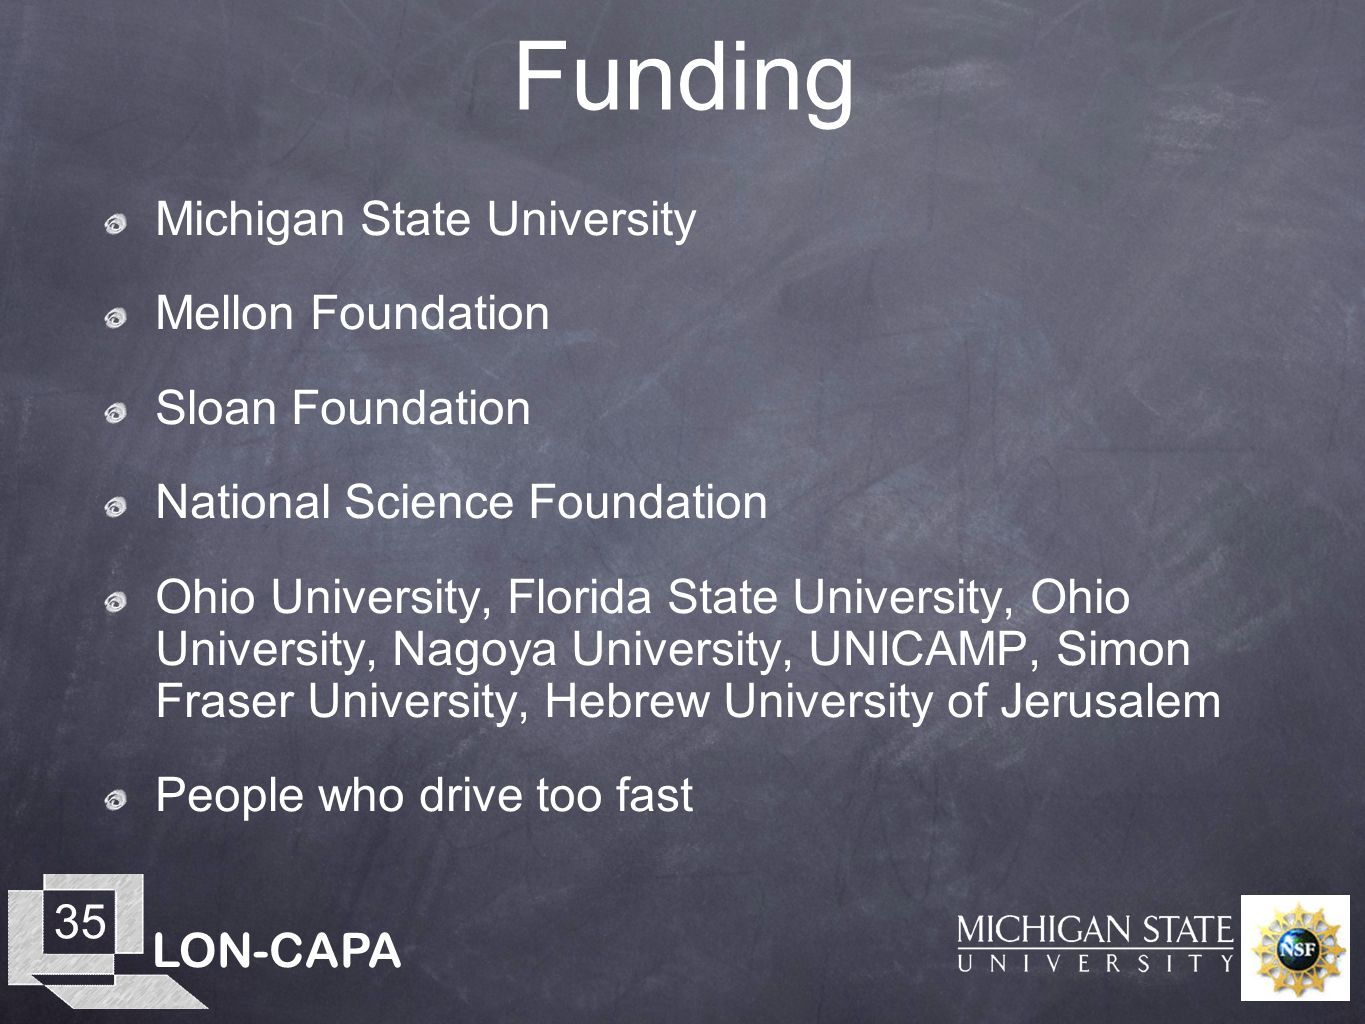 LON-CAPA 35 Funding Michigan State University Mellon Foundation Sloan Foundation National Science Foundation Ohio University, Florida State University, Ohio University, Nagoya University, UNICAMP, Simon Fraser University, Hebrew University of Jerusalem People who drive too fast